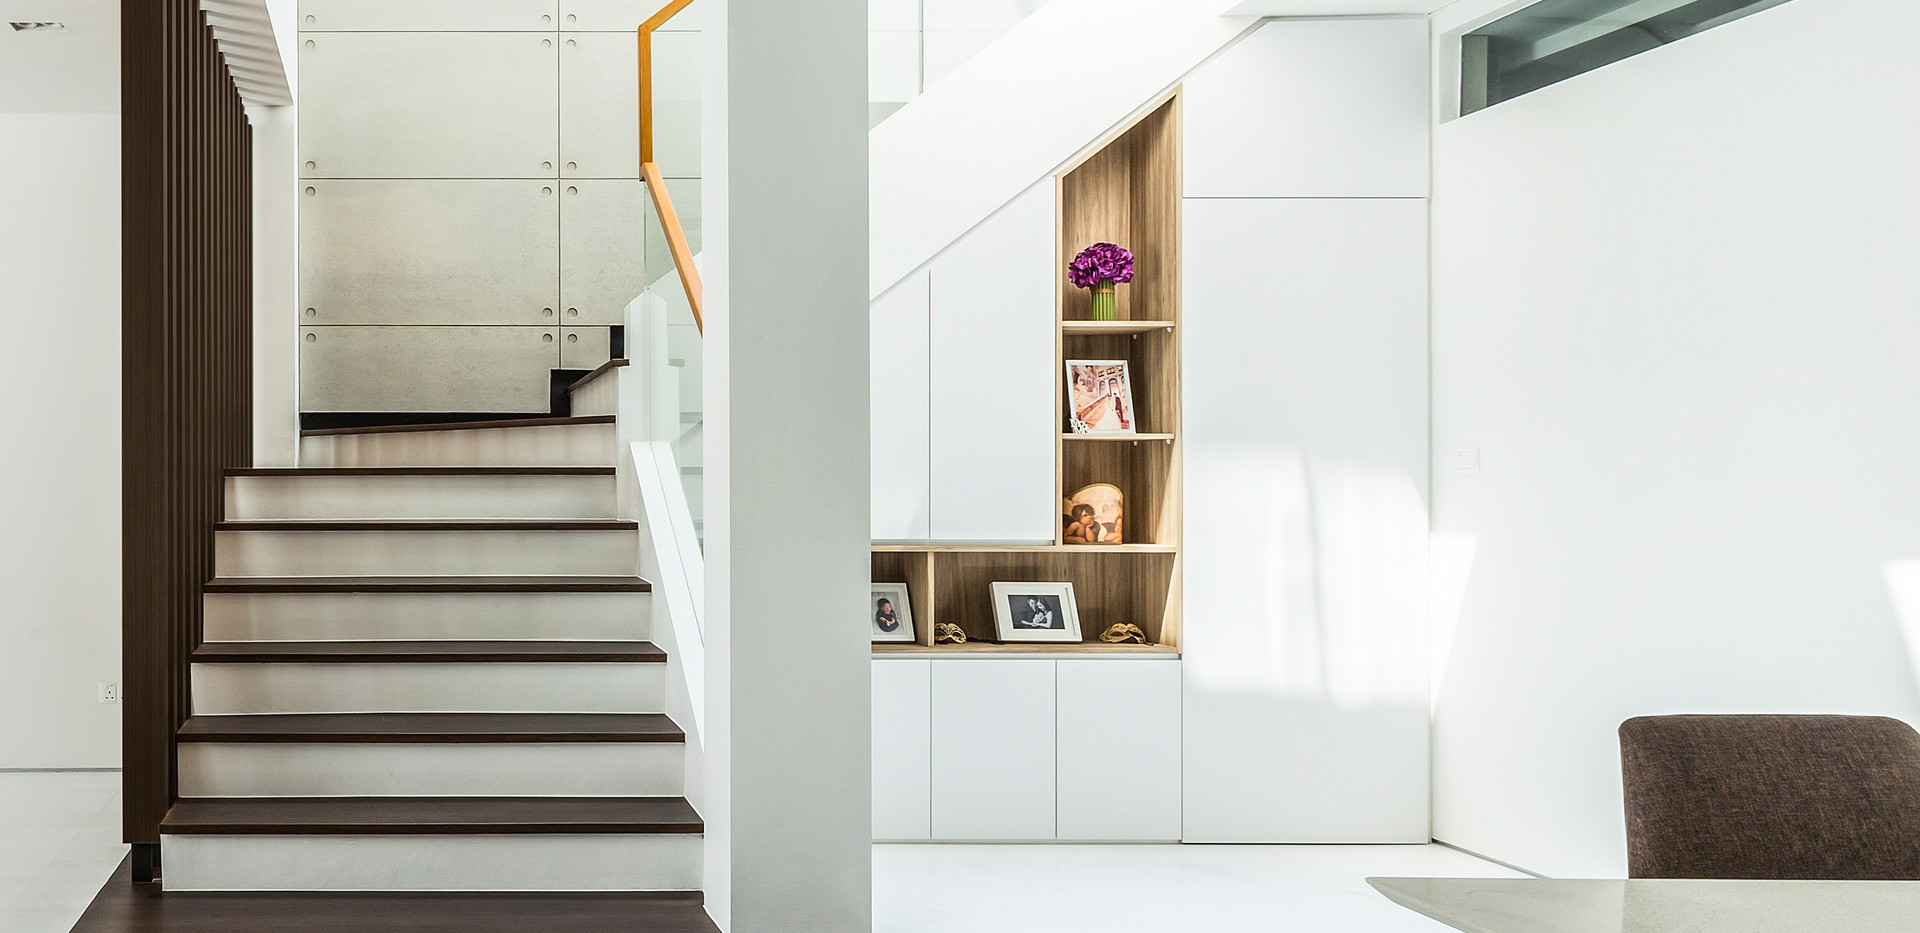 Wall shelves and Stair fences